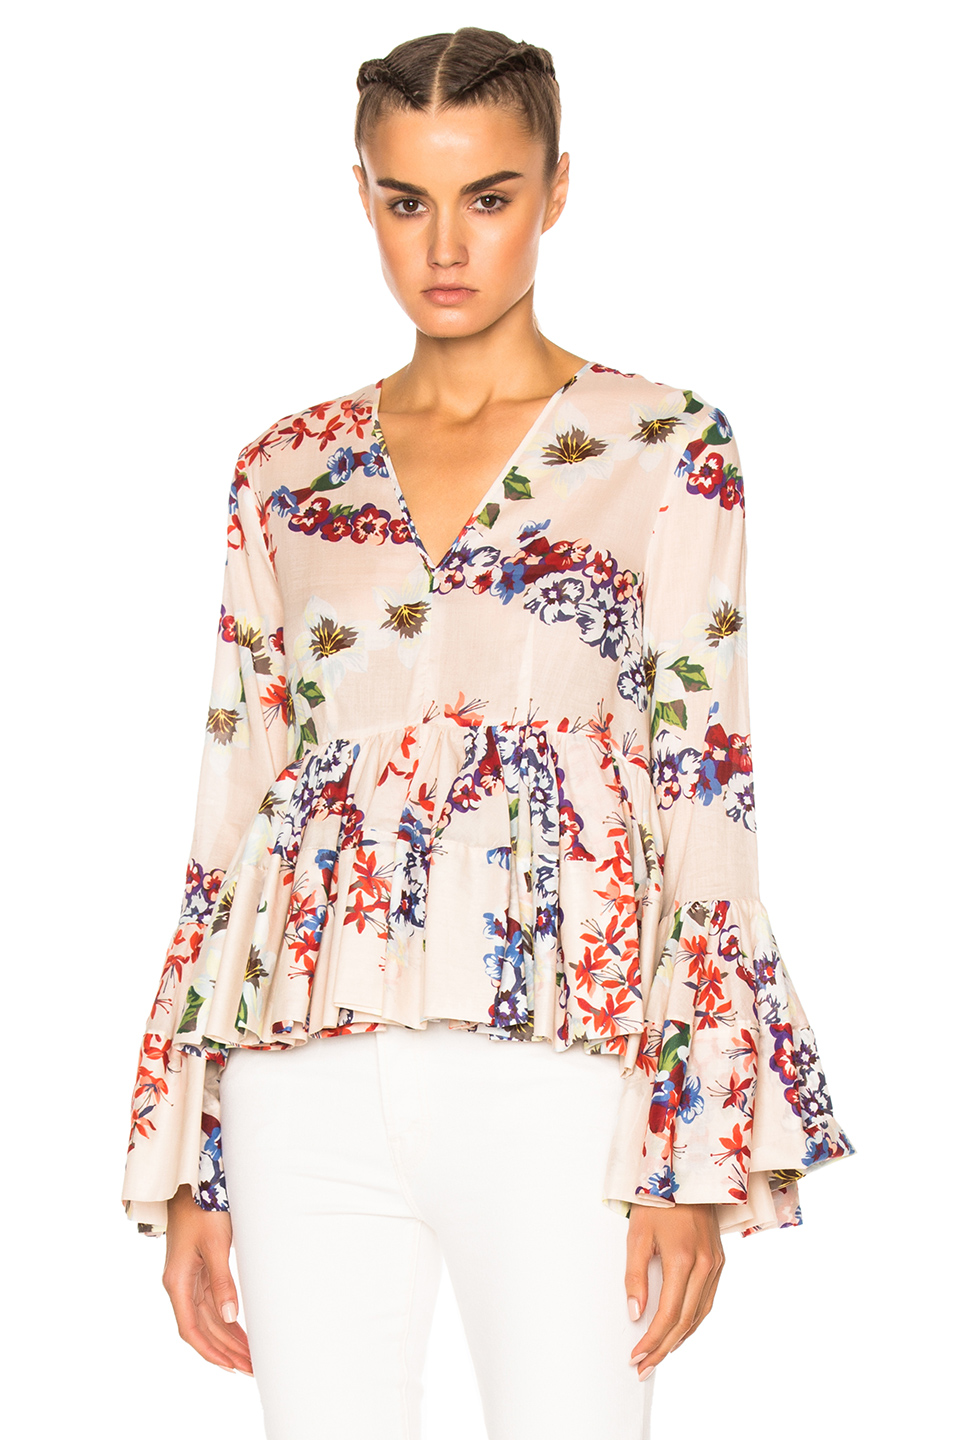 MSGM Printed Long Sleeve Top in Floral,White